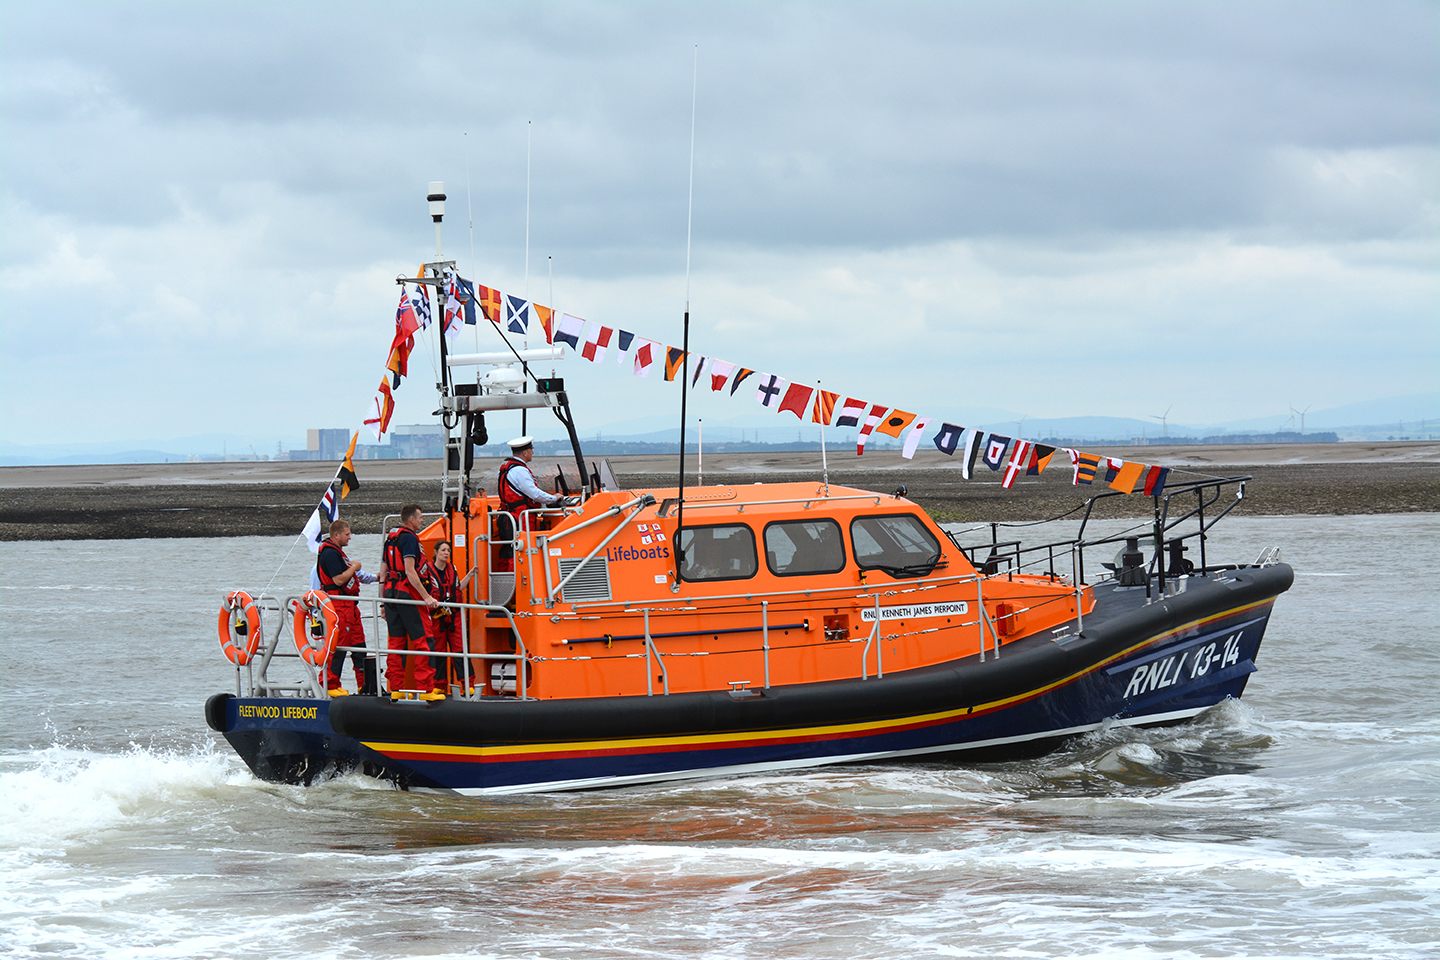 The New Fleetwood Lifeboat, the Kenneth James Pierpoint